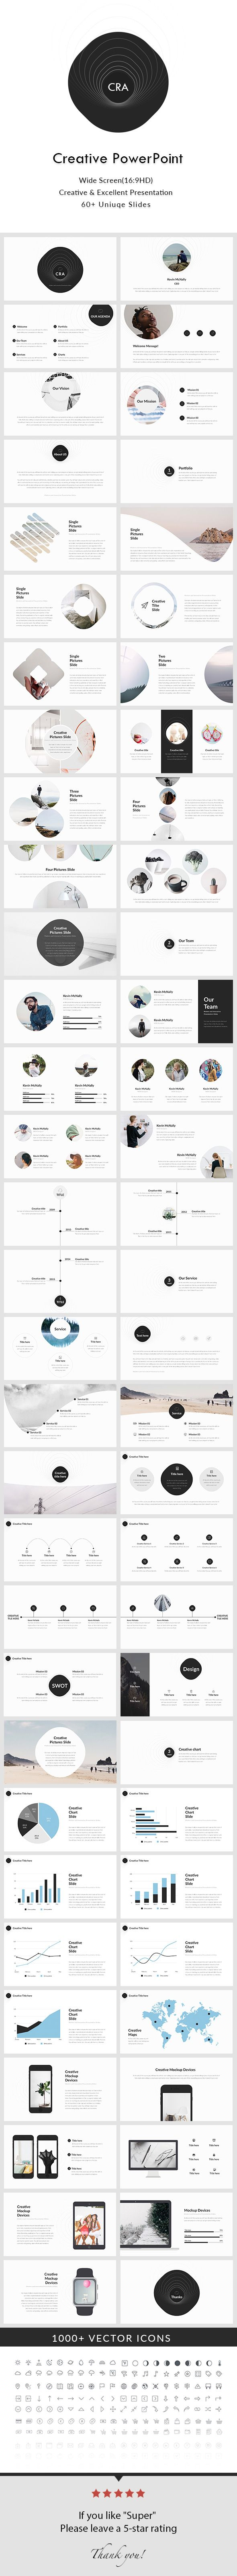 Creative powerpoint presentation template creative powerpoint creative keynote presentation template by general description wide screen size free font used 62 unique slides master slides creative slides easy toneelgroepblik Images